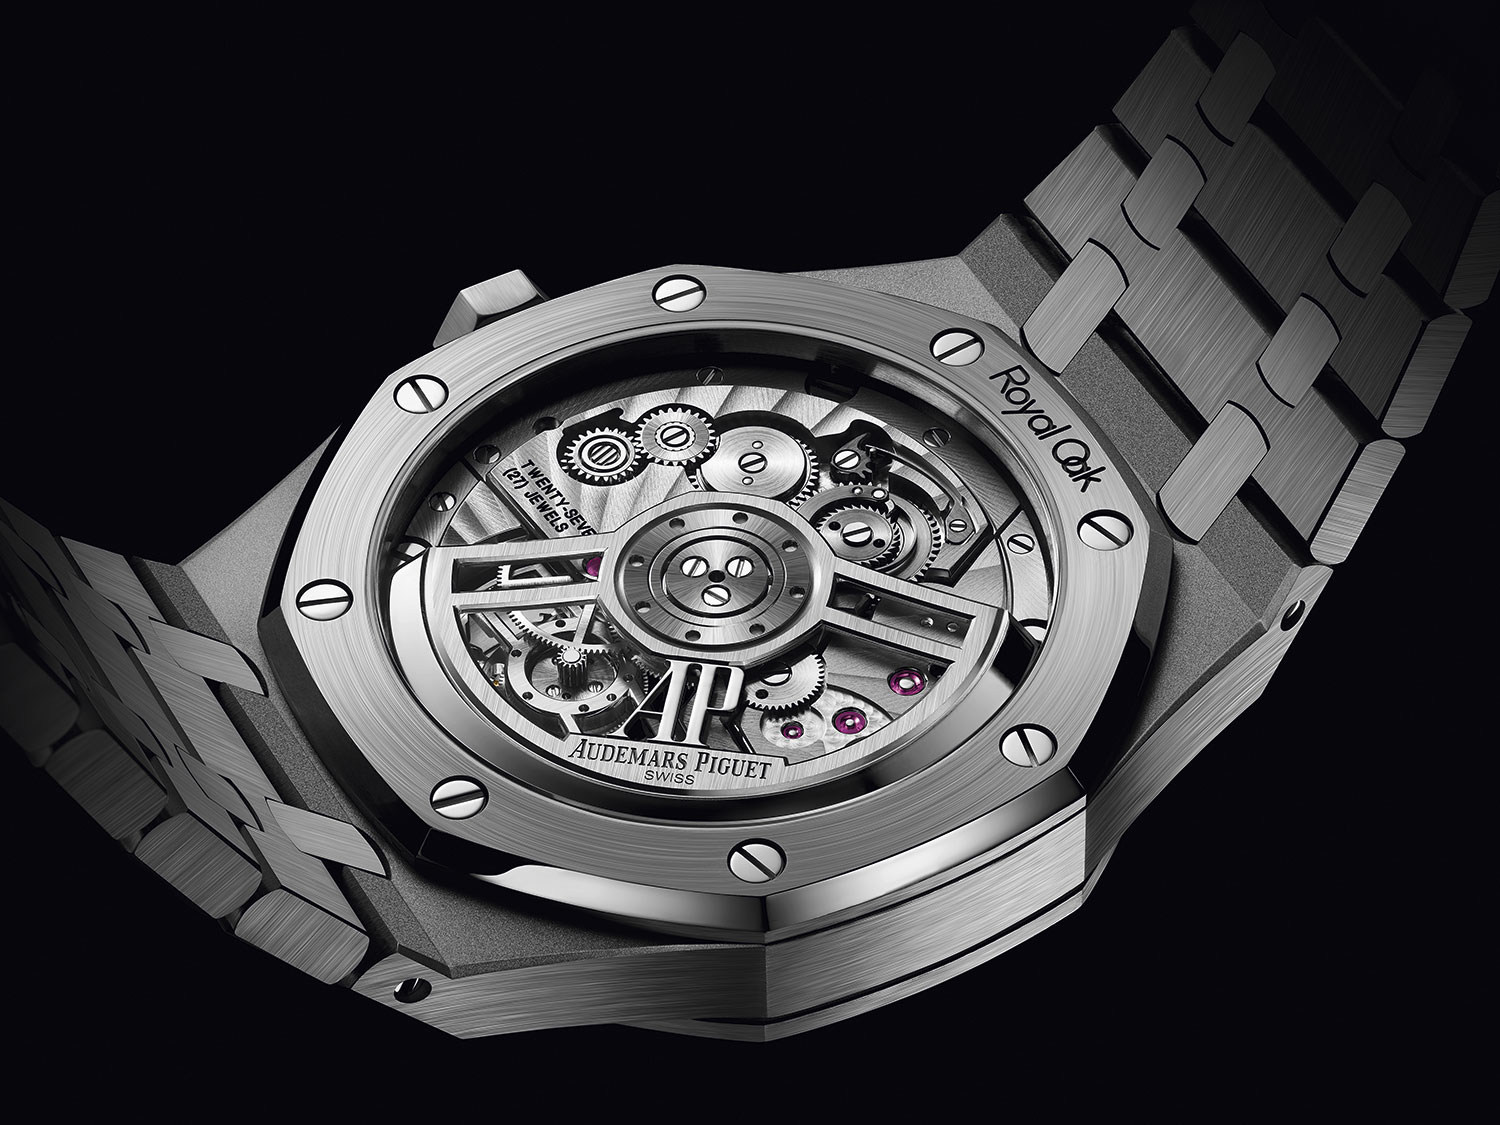 Audemars-Piguet-Royal-Oak-Selfwinding-Flying-Tourbillon-calibre-2950-Horas-y-Minutos.jpg